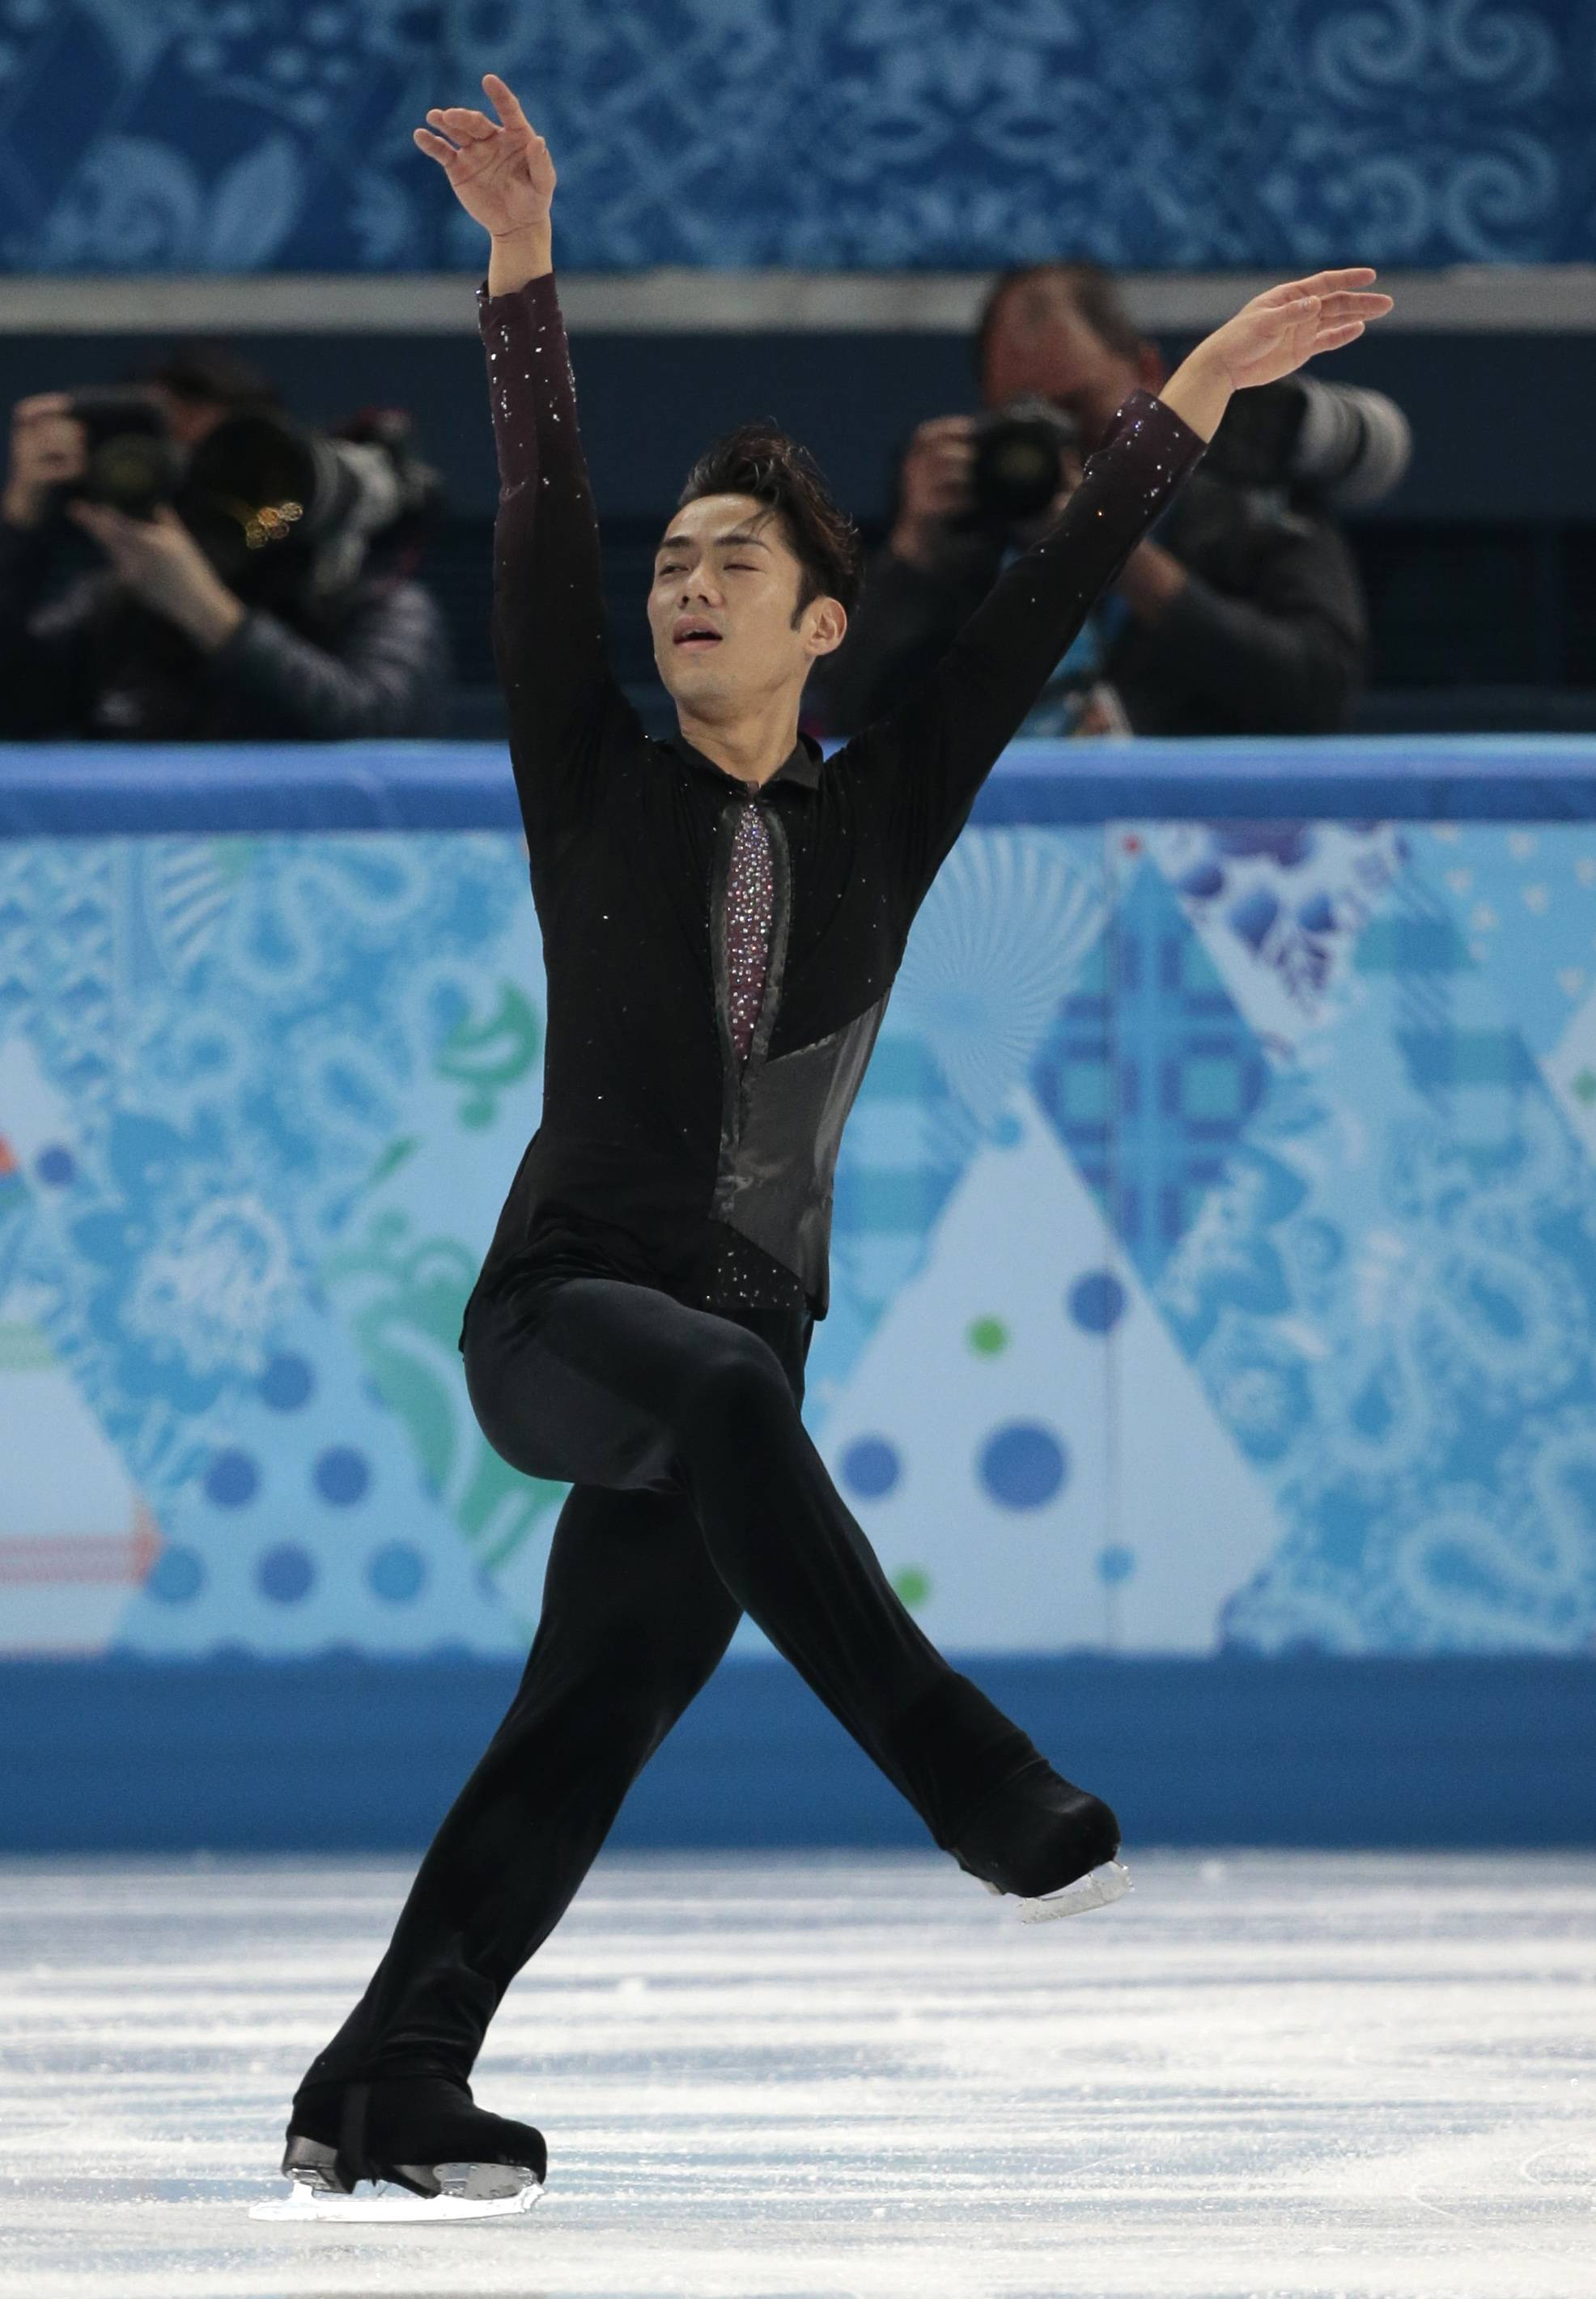 Daisuke Takahashi of Japan competes in the men's short program figure skating competition.